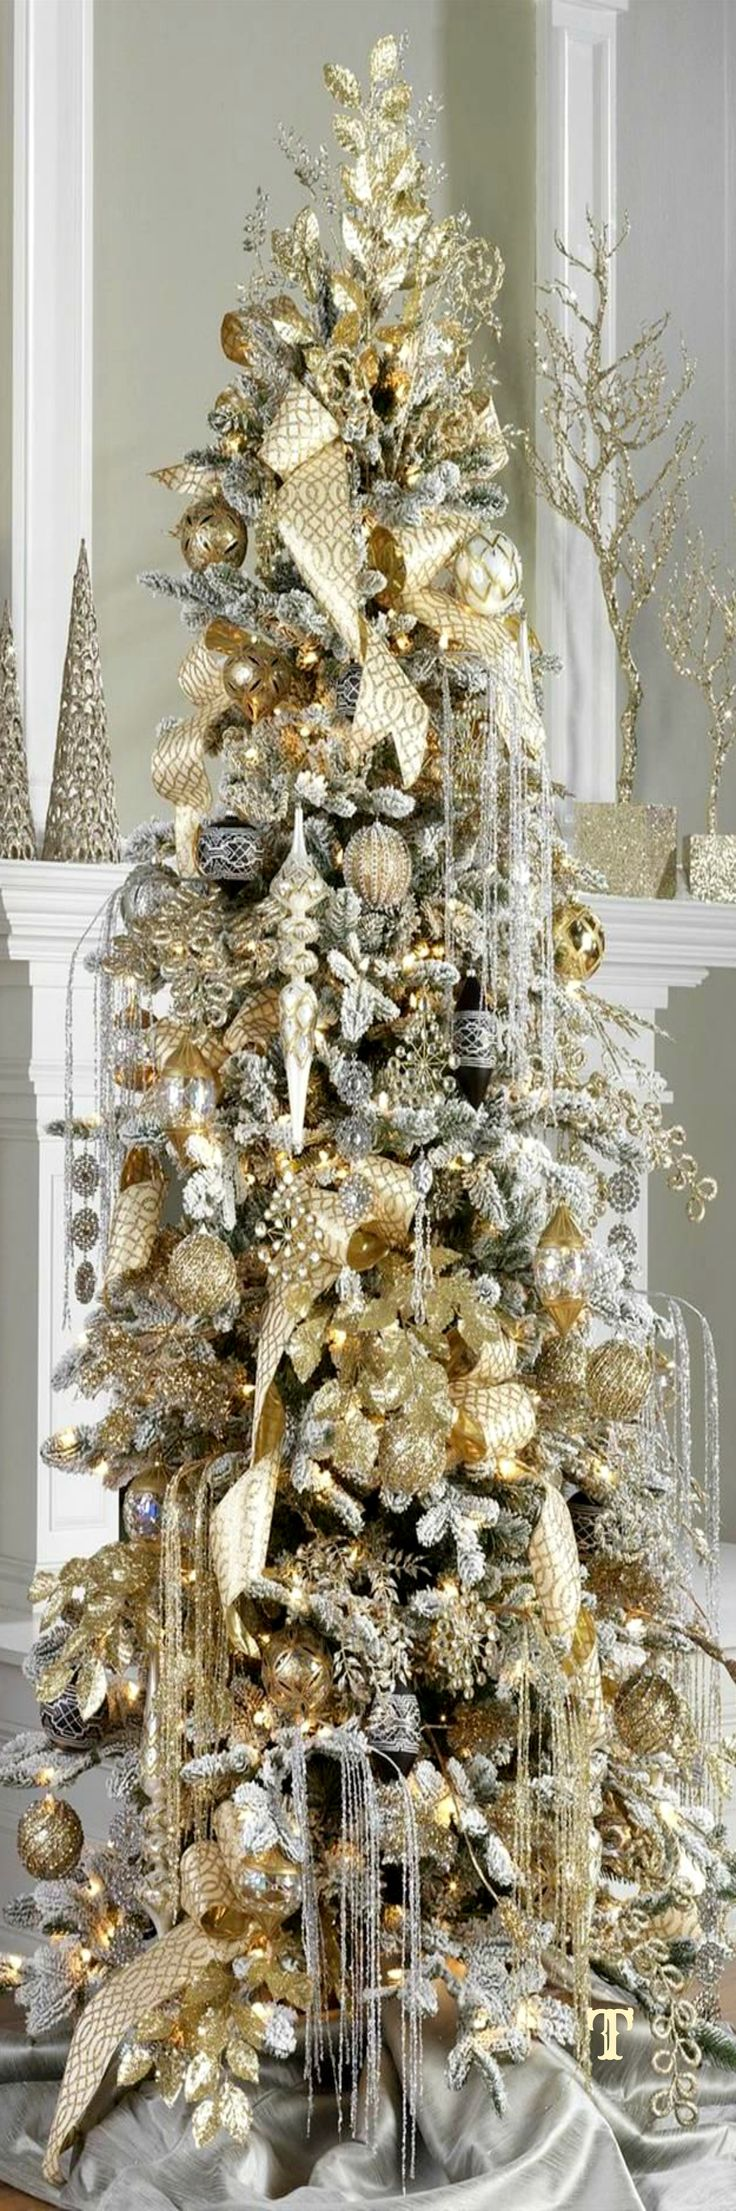 25 best ideas about gold christmas tree on pinterest for White and gold tree decorations